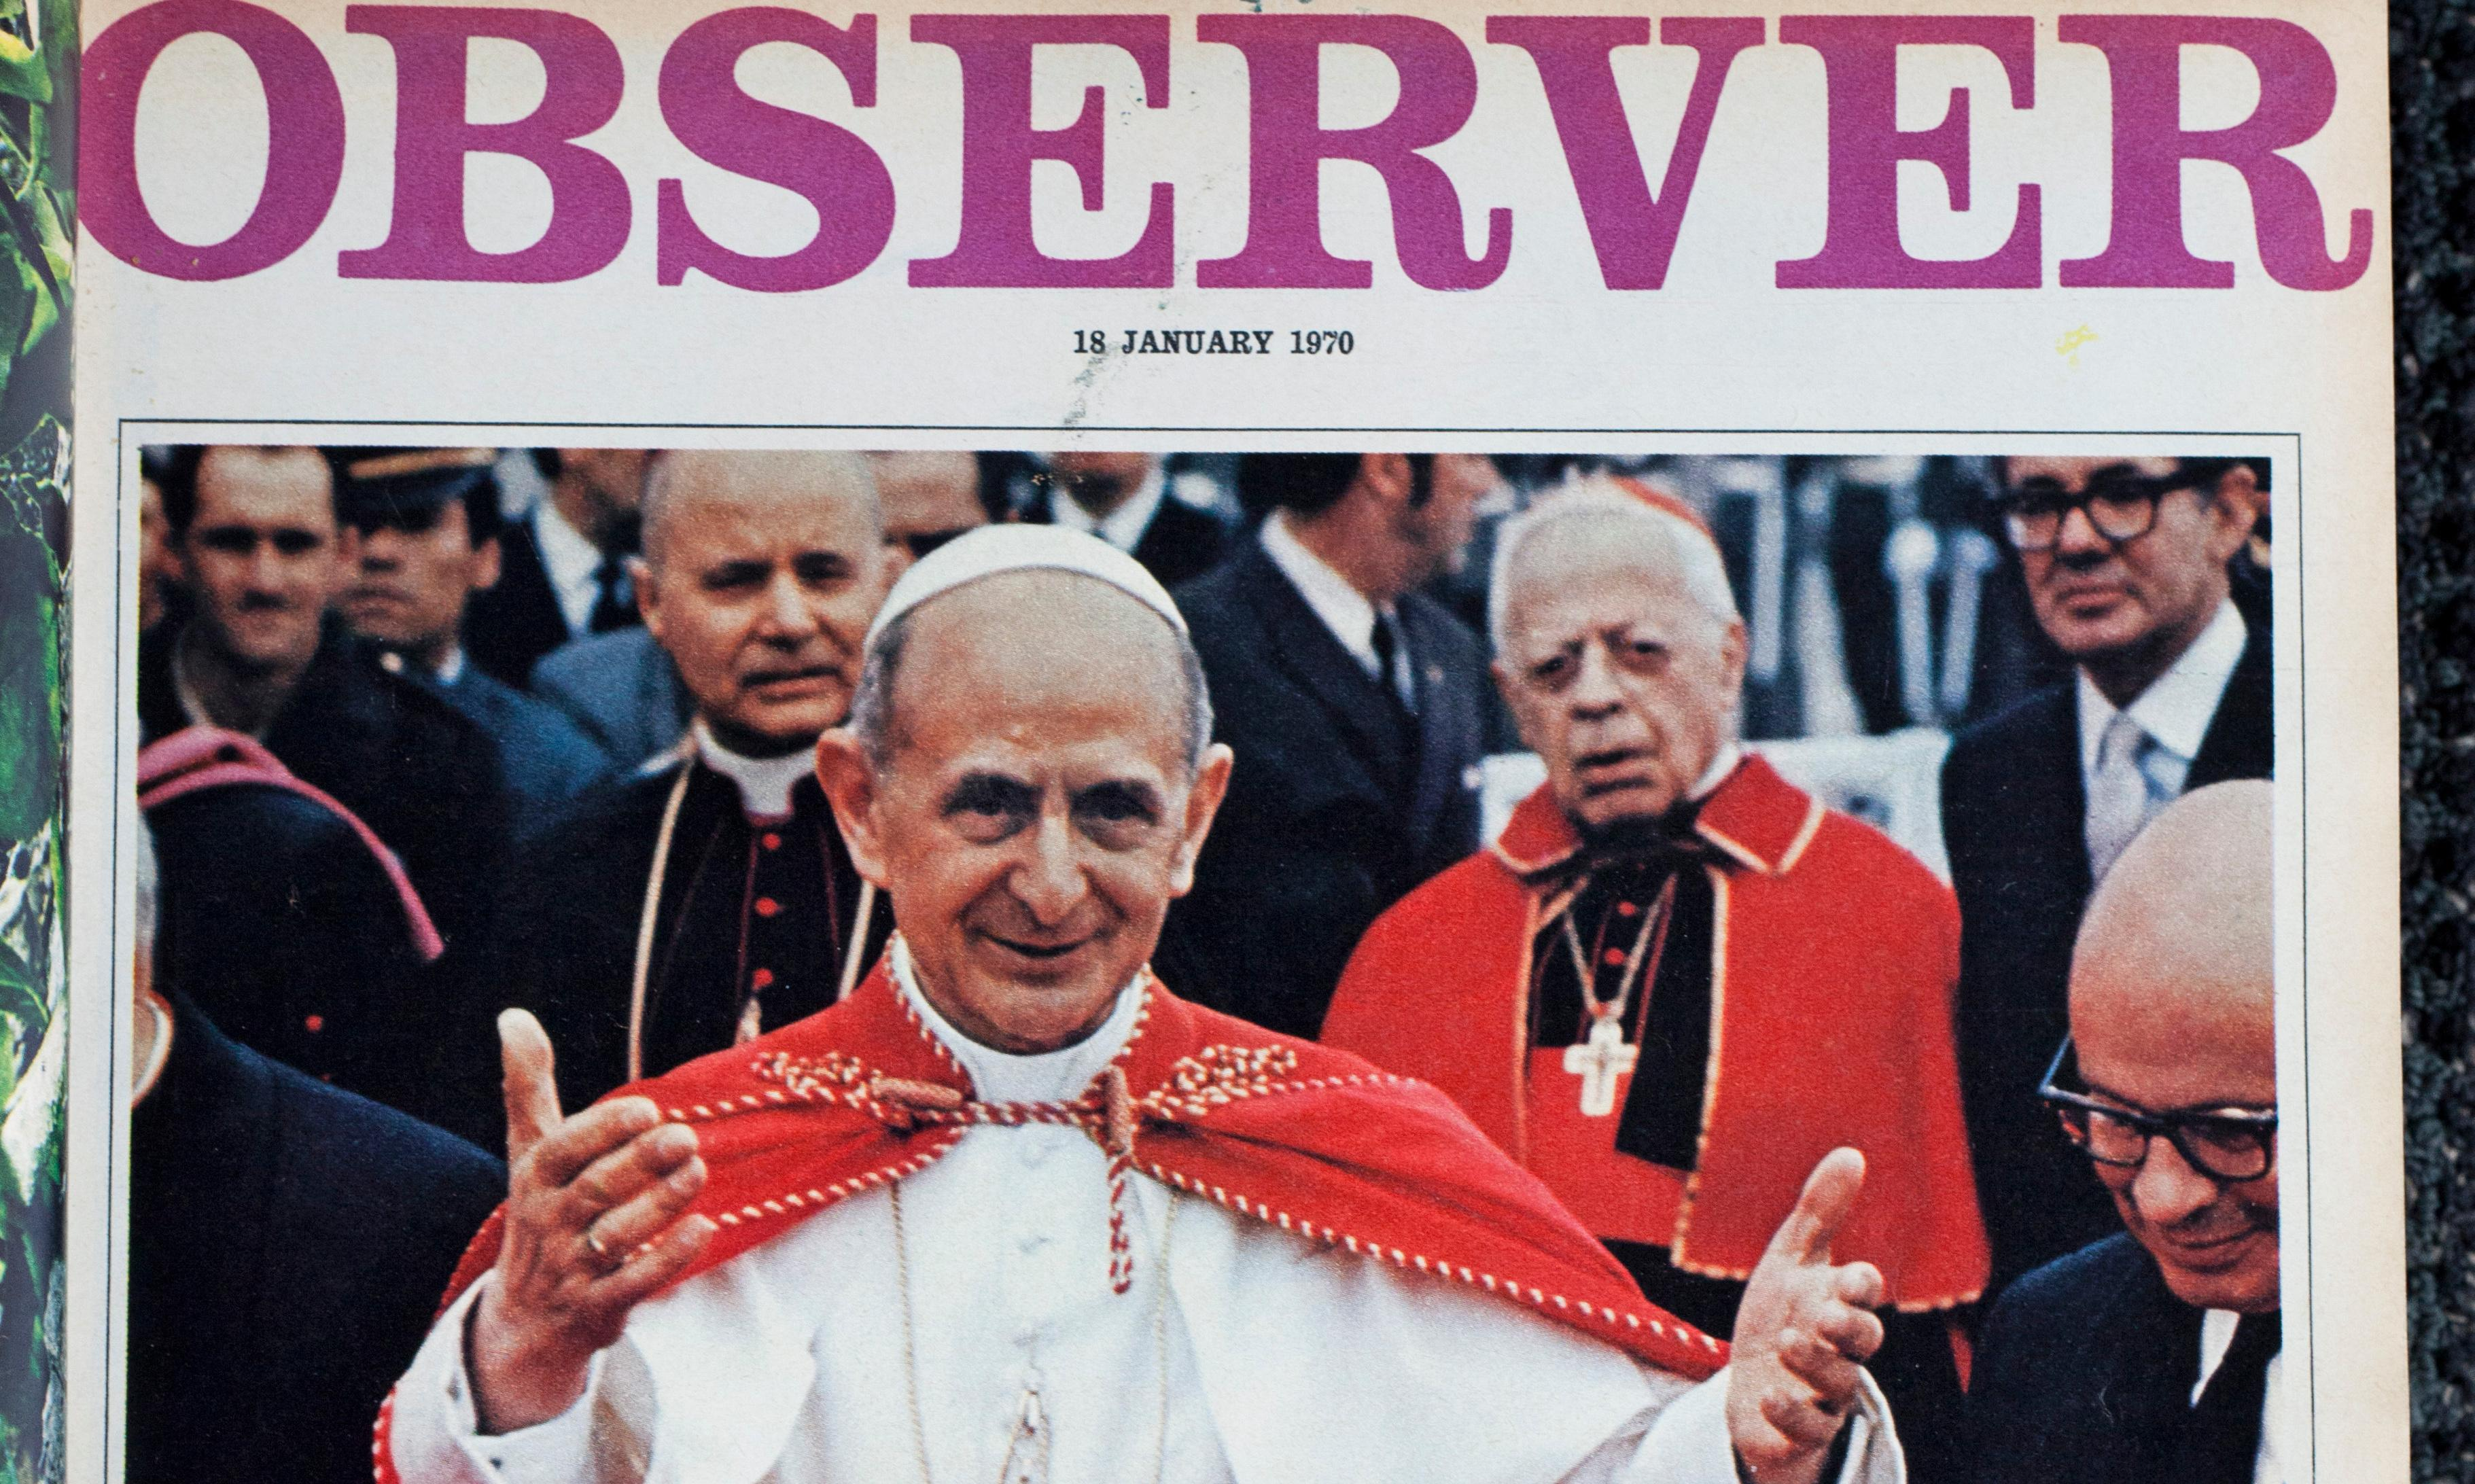 From the archive: What would you do if you were Pope?